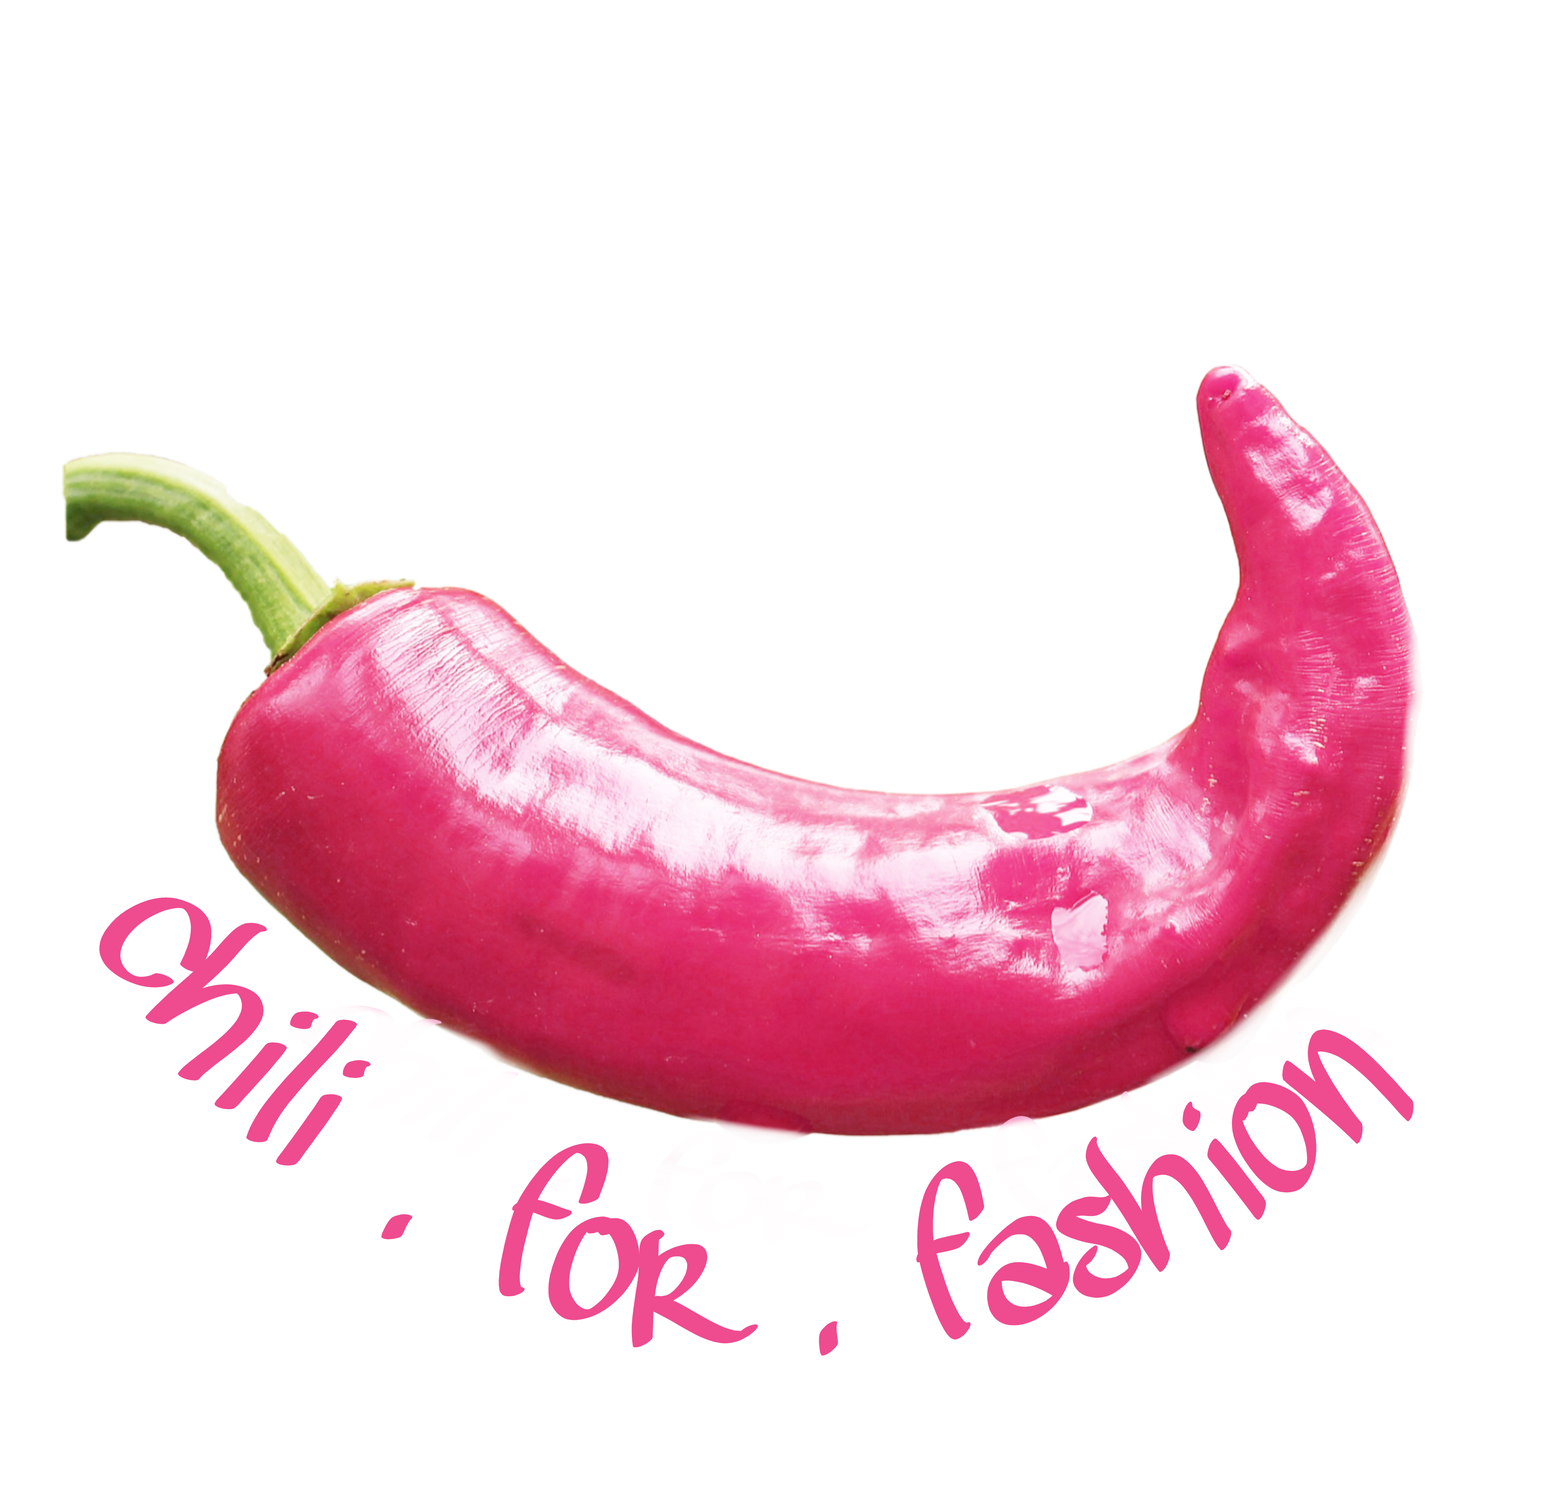 Unser neuer BLOG chili.for.fashion